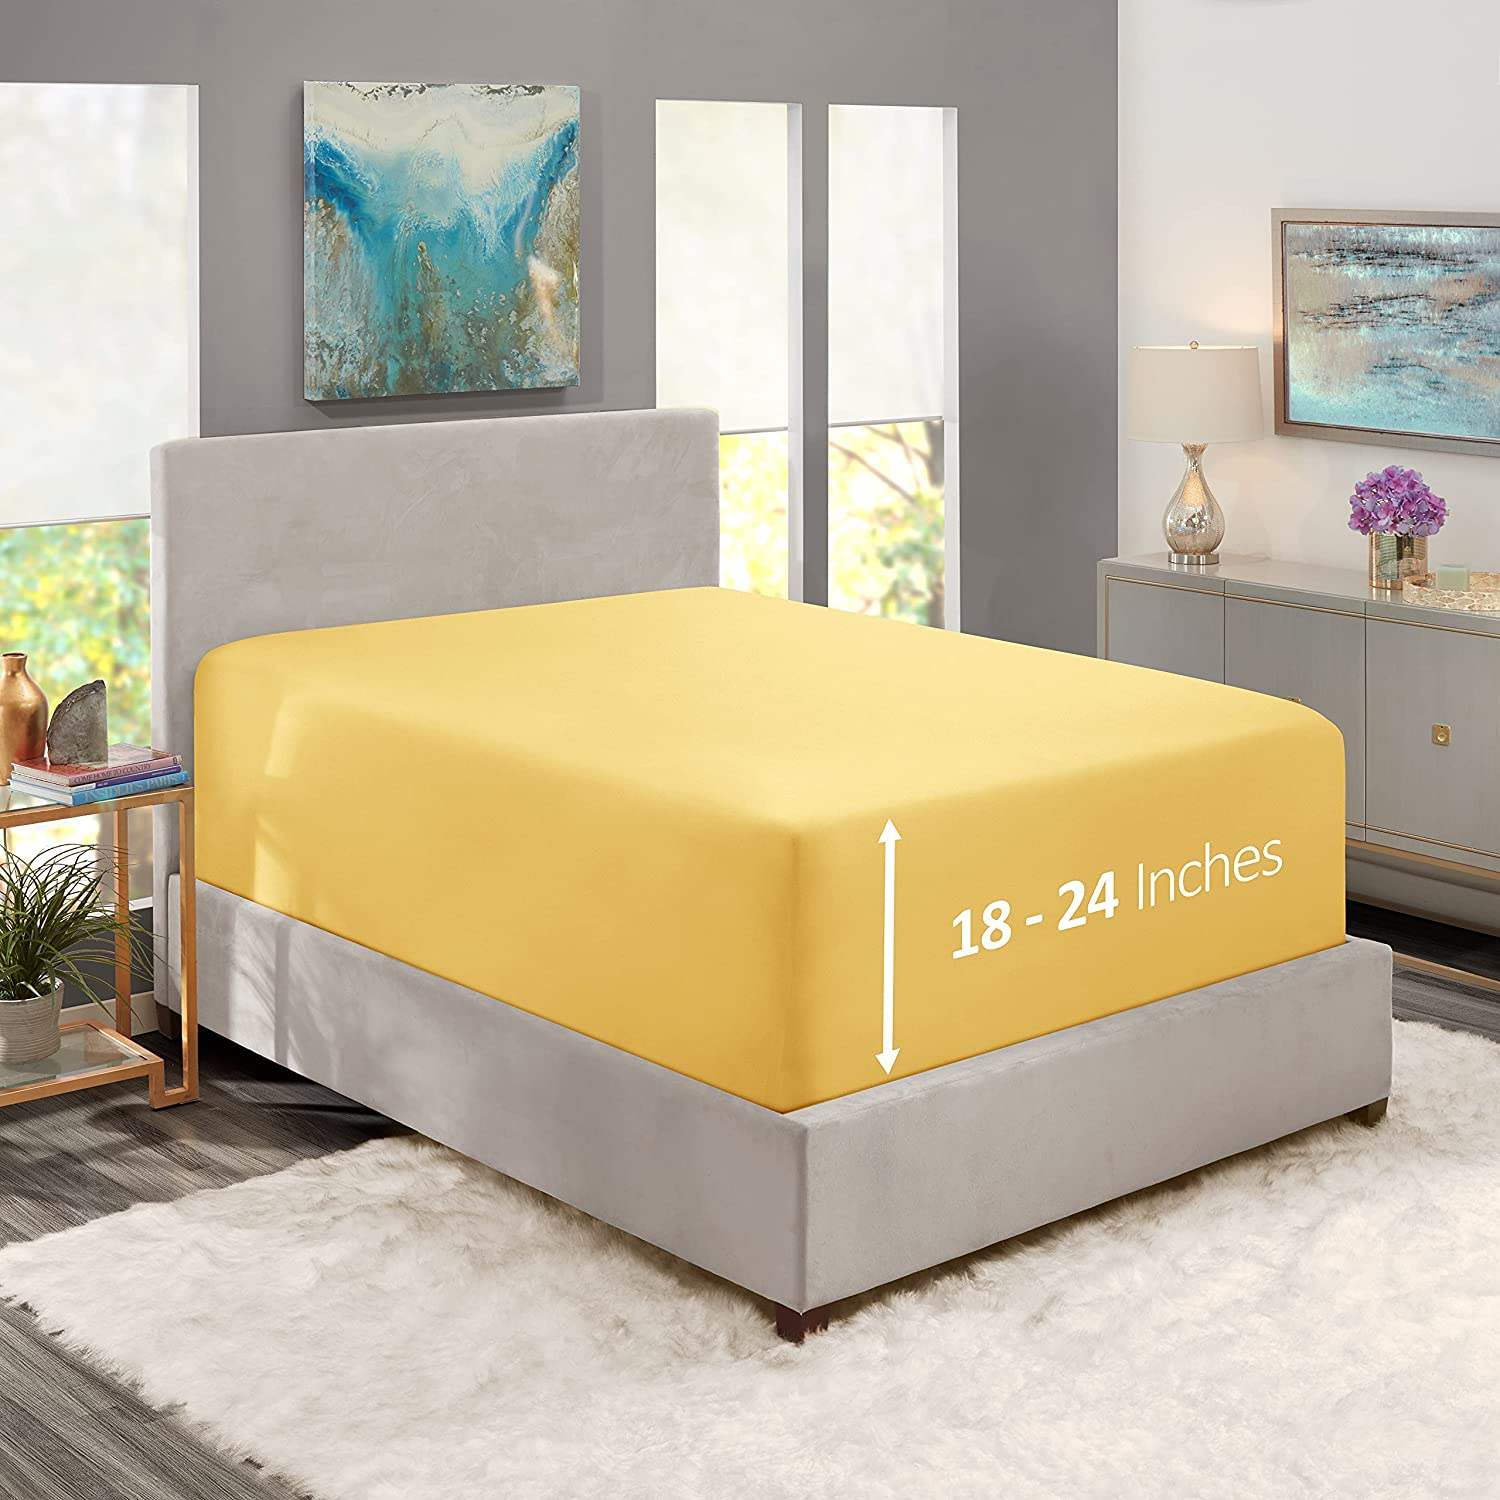 Nestl Fitted Sheets Queen Size National Be super welcome uniform free shipping Fi – 1800 Premium Microfiber